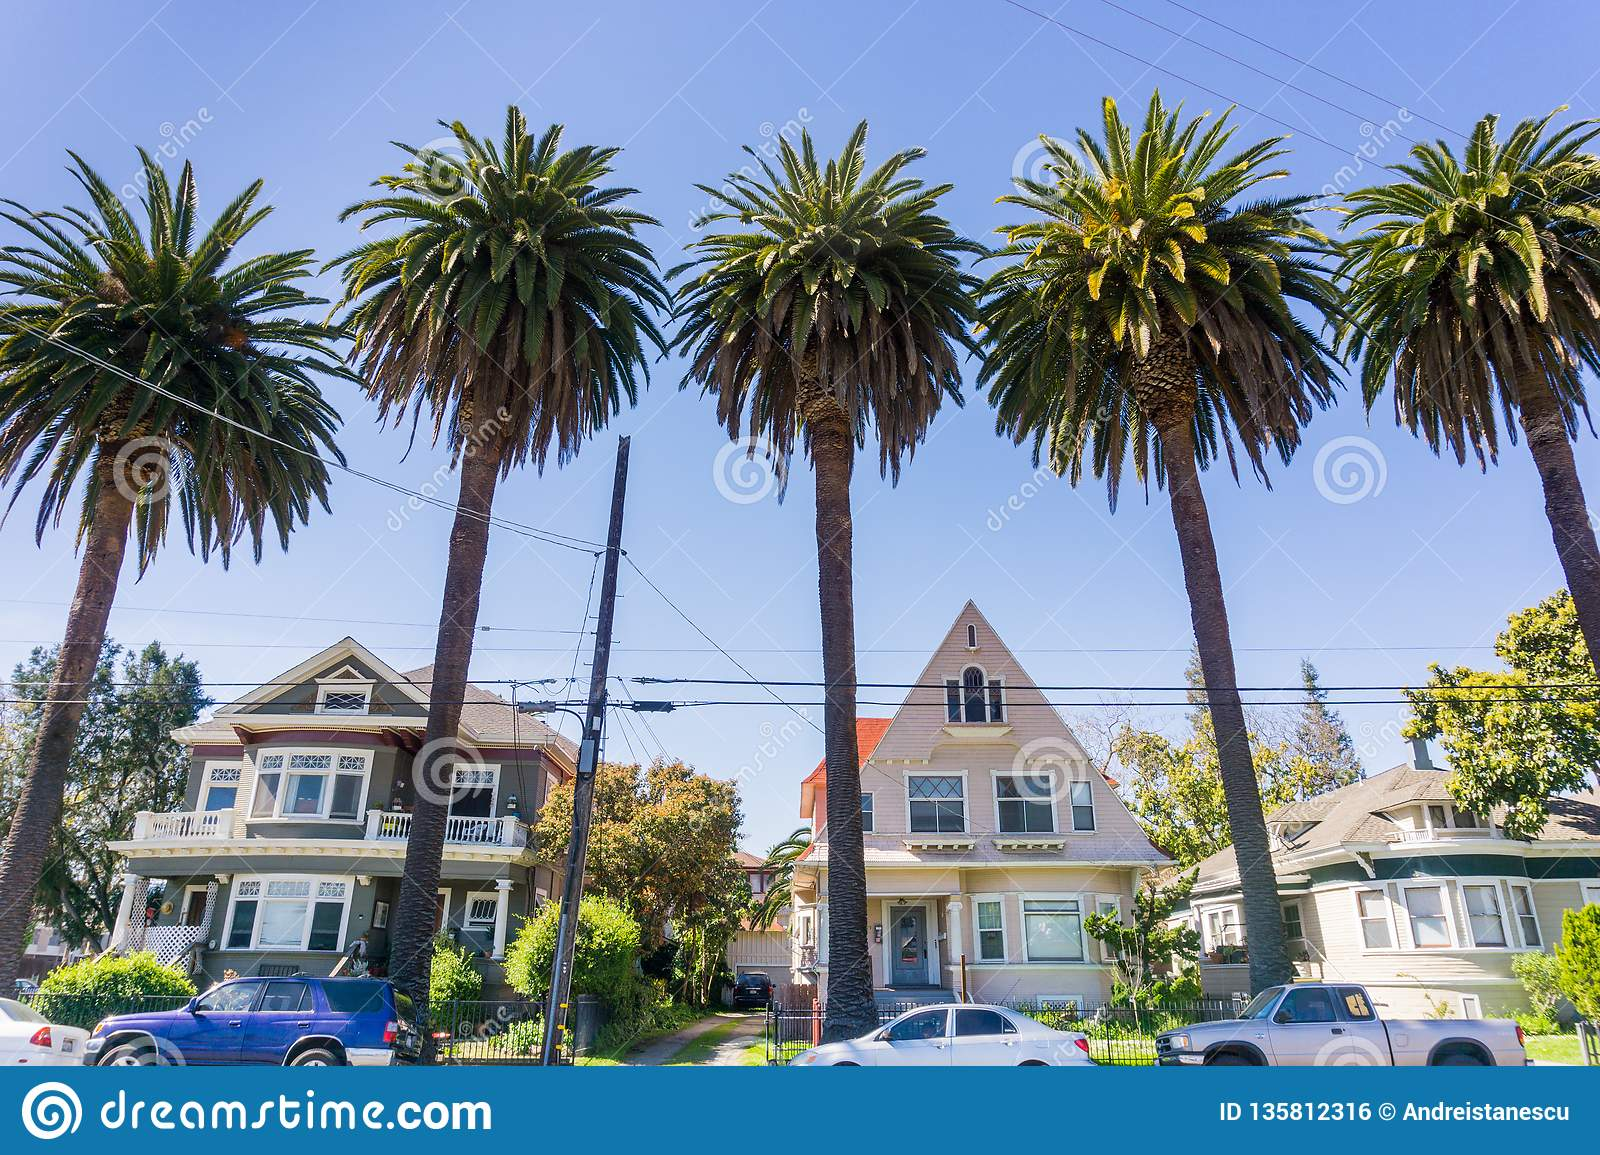 Old houses and palm trees on a street in downtown San Jose, California